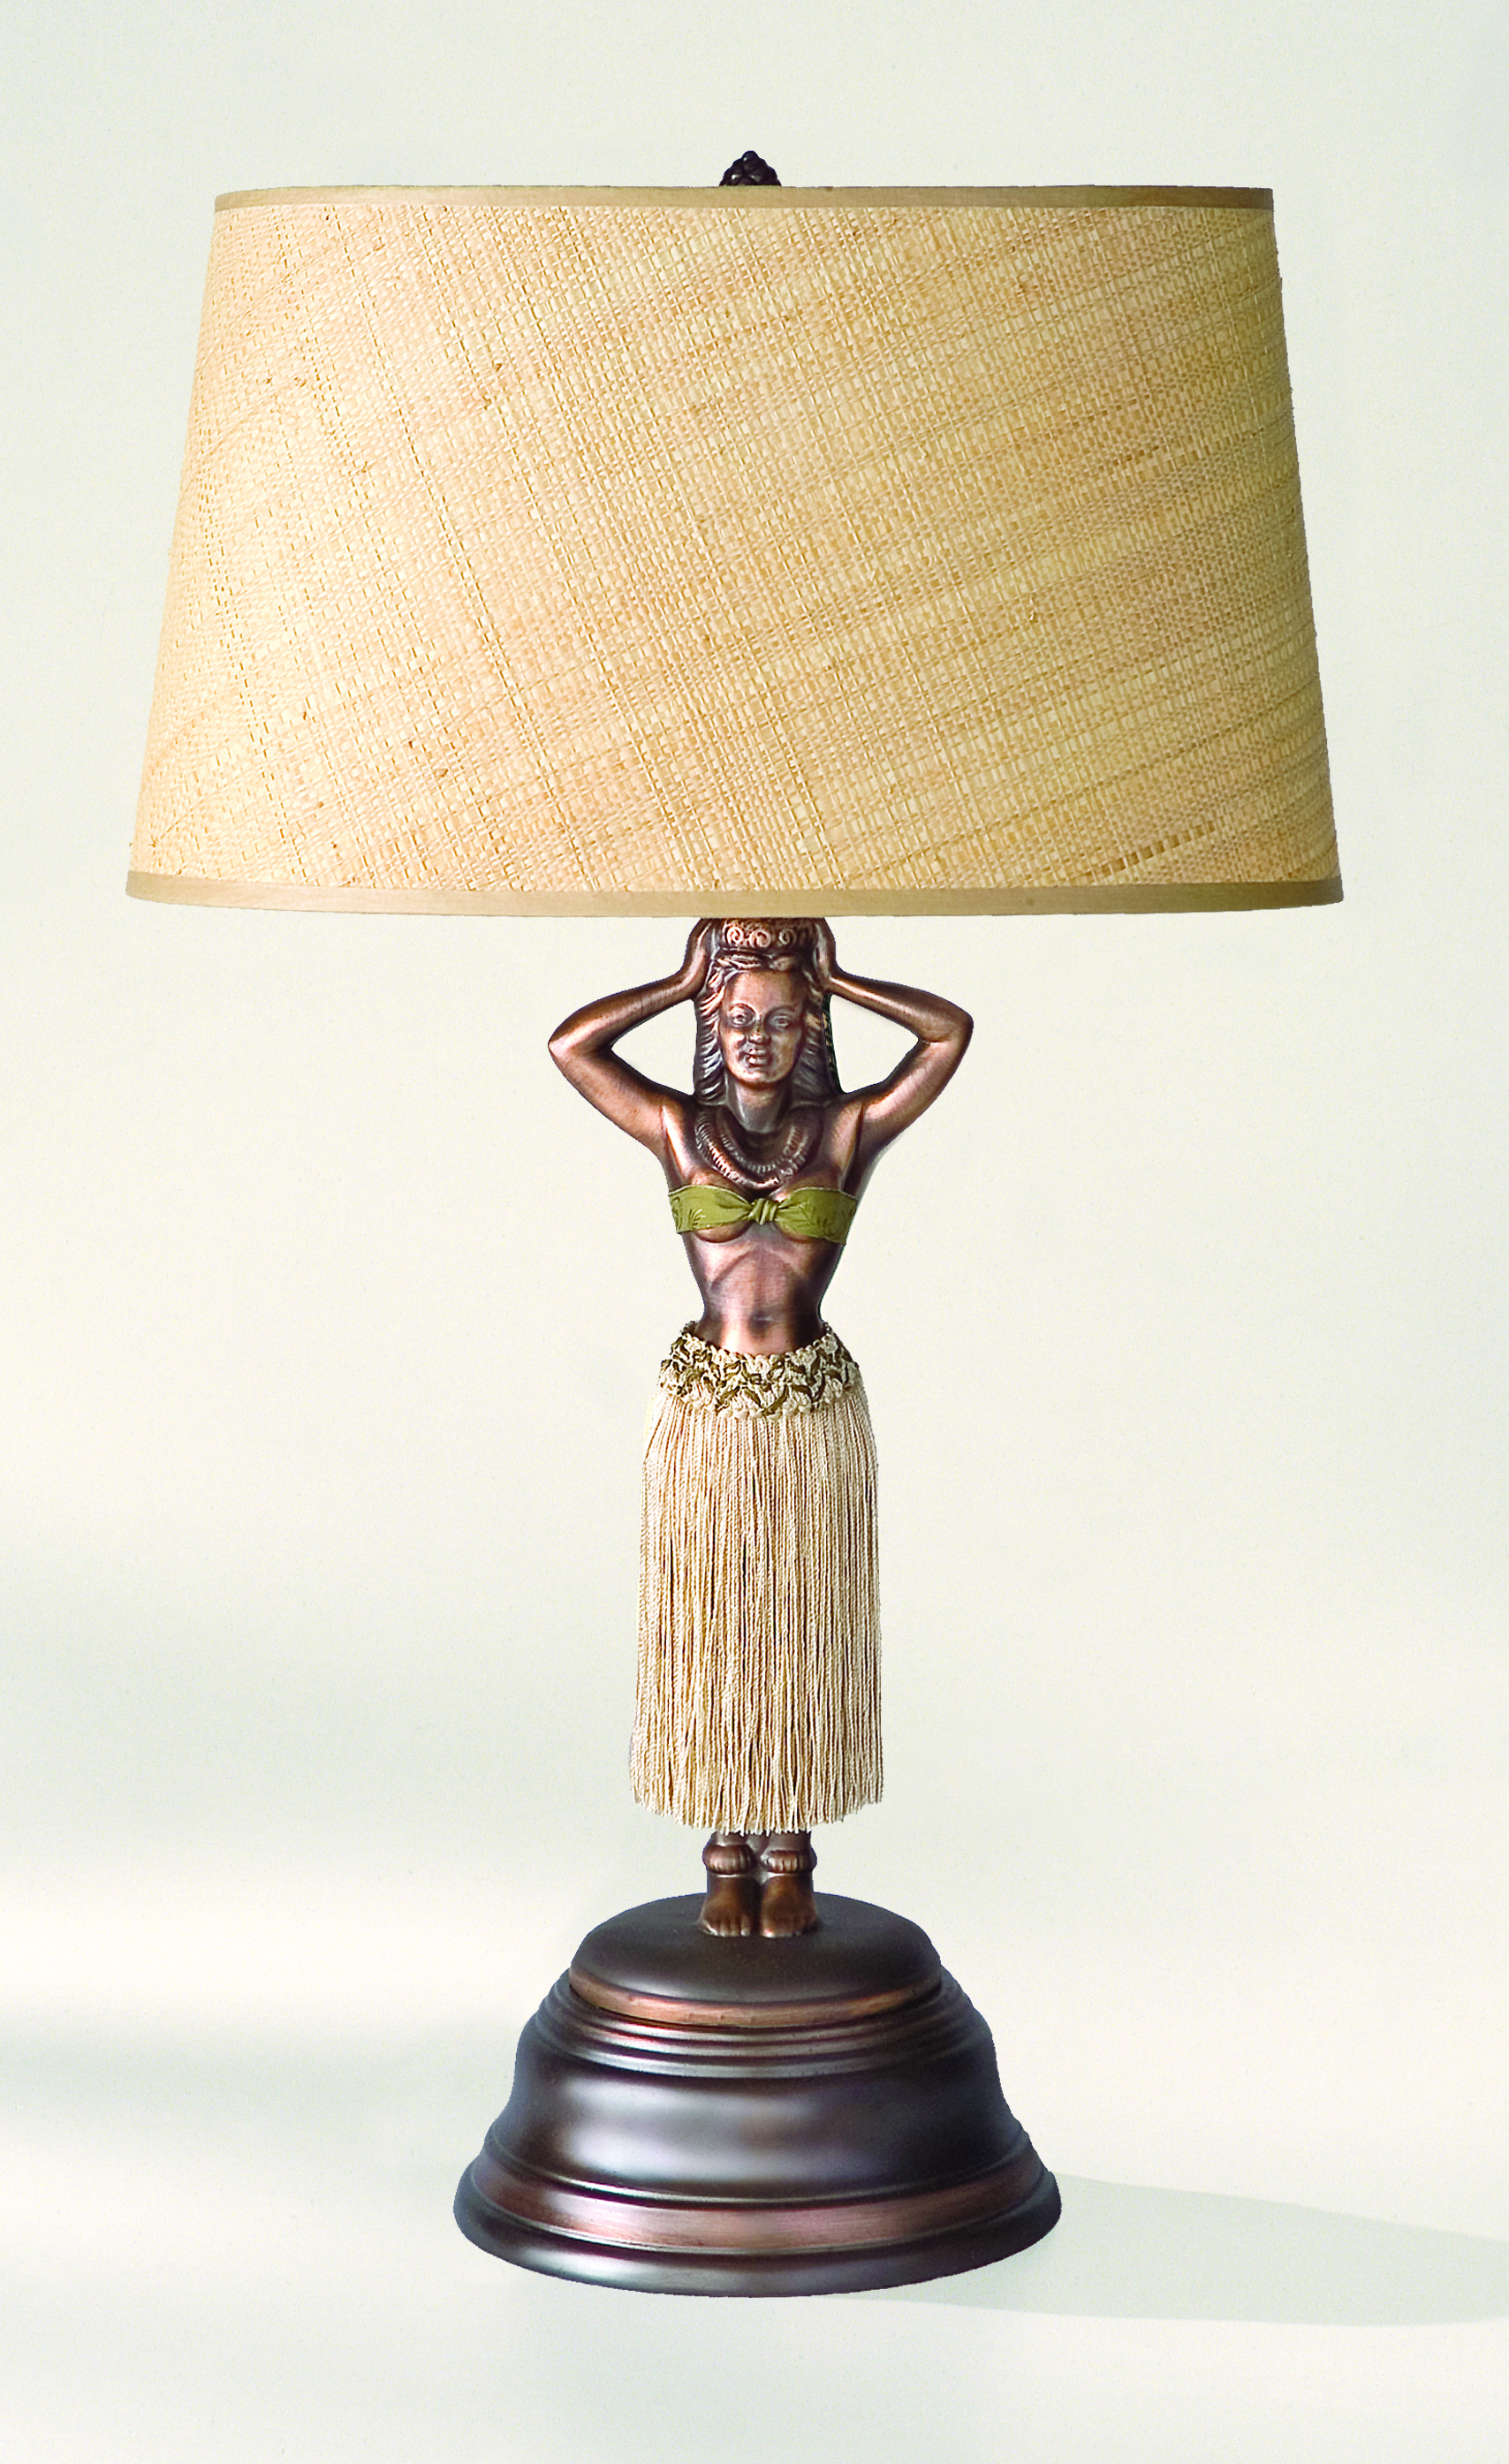 Hula girl lamps unique hawaiian hula girl motion lamp reproductions enlarge image geotapseo Gallery